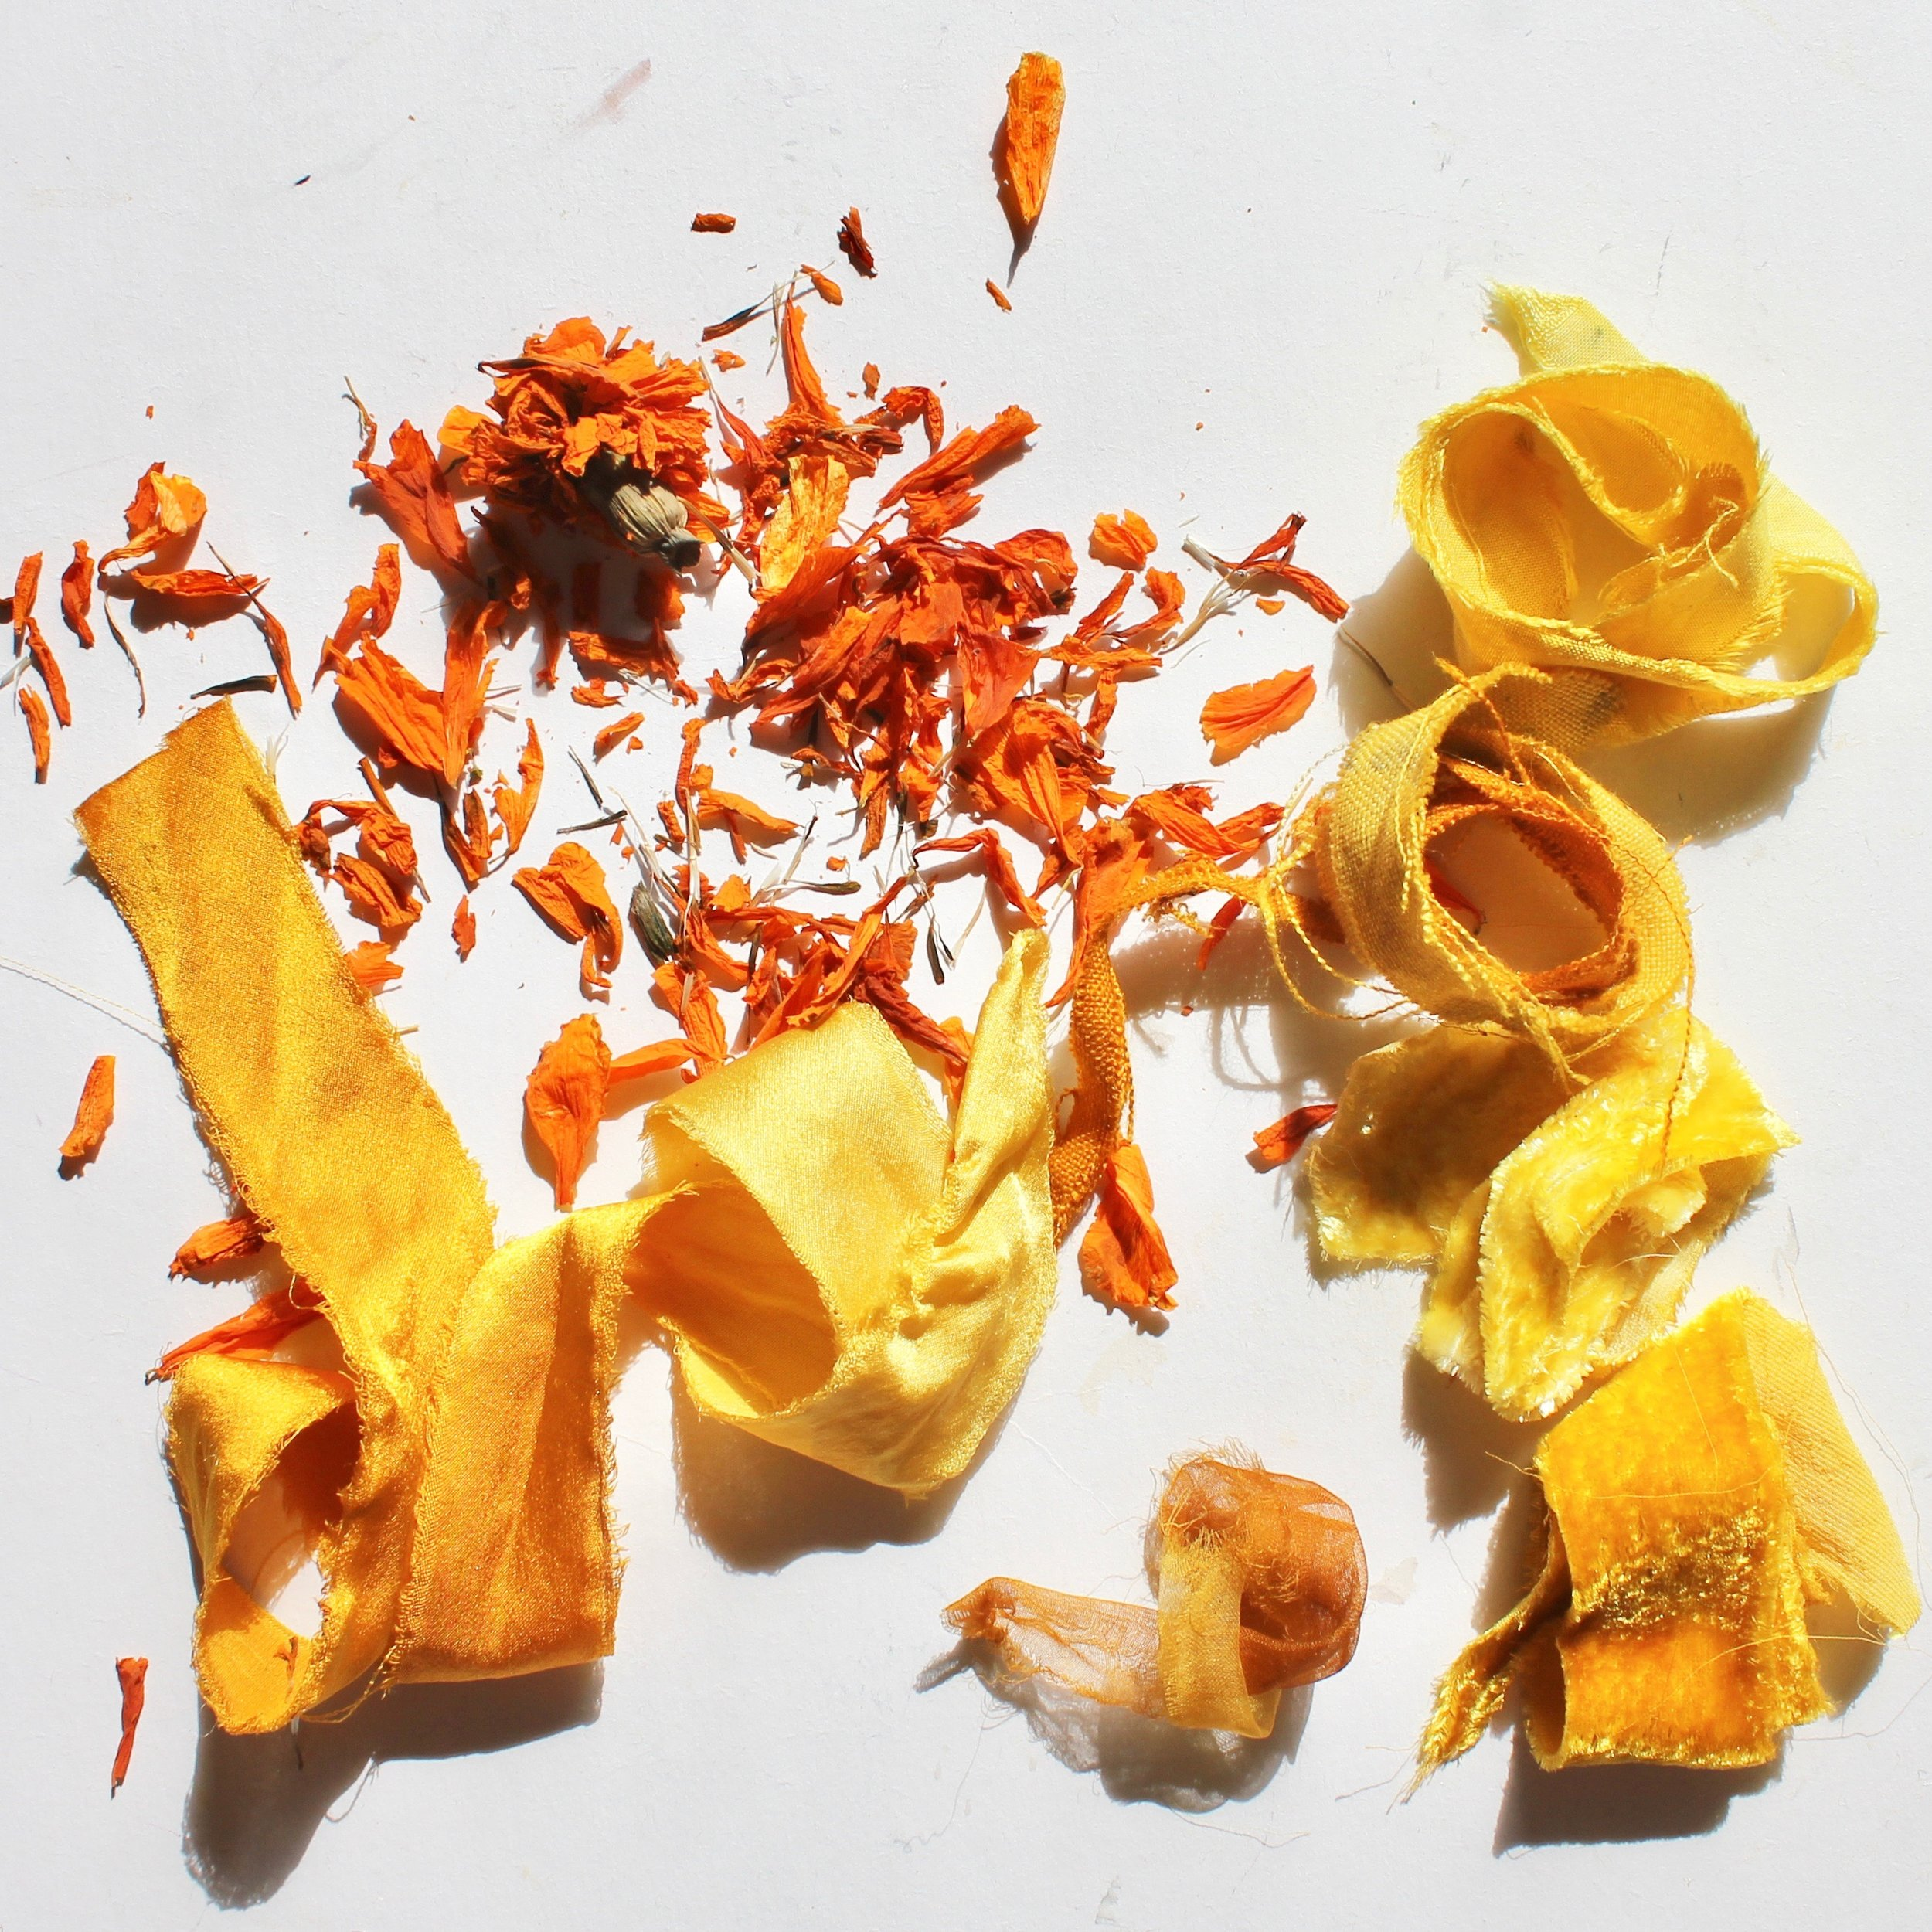 Marigold  The petals of the marigold flower yield a range of sunny colors from butter yellow to deep orange.